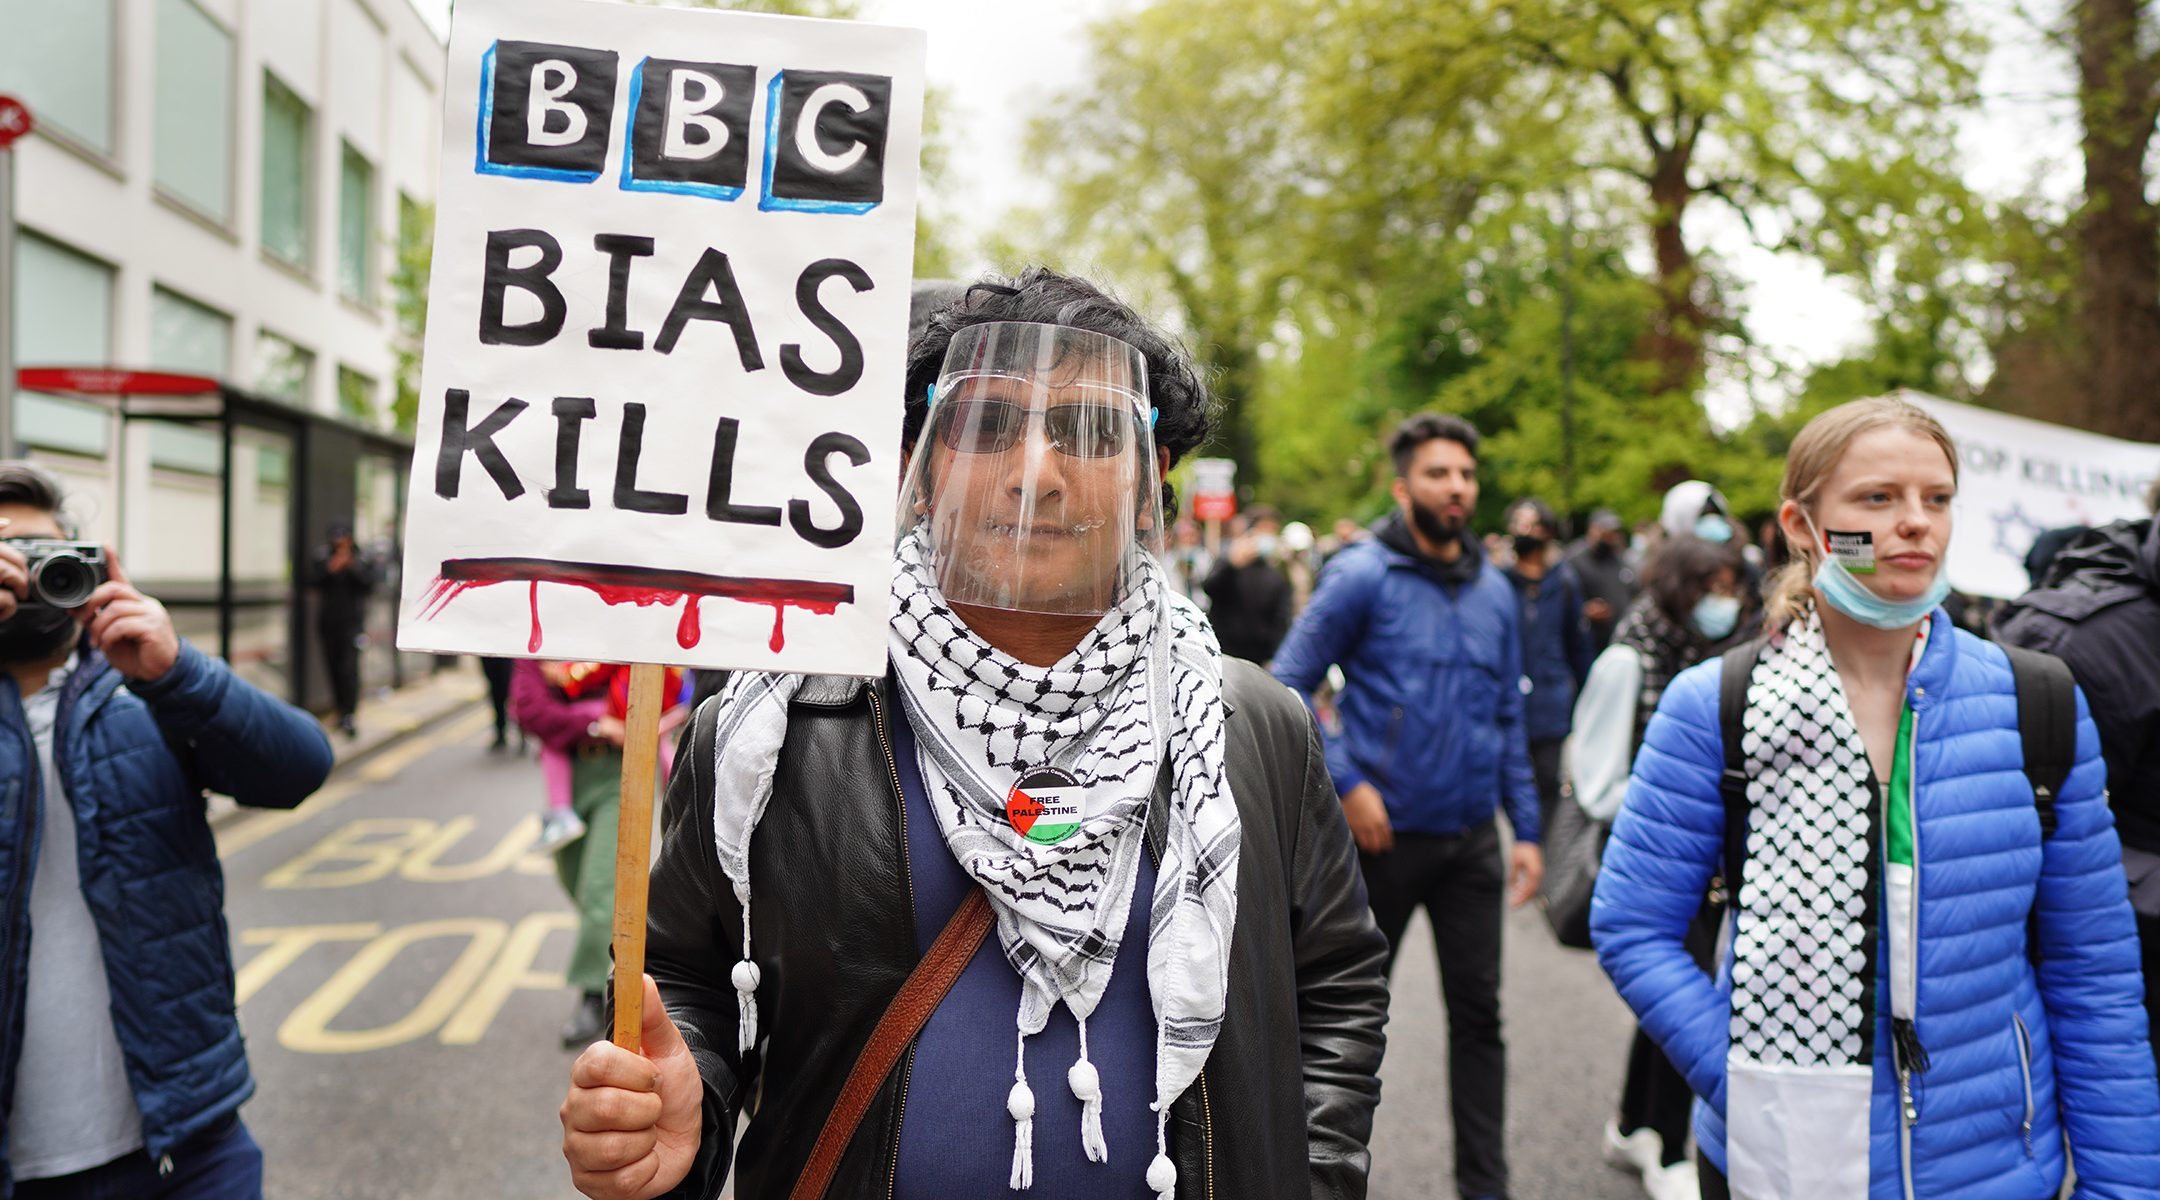 A protester marches in London, the UK at a rally again Israel's actions in Gaza on May 16, 2021. (Alisdare Hickson)